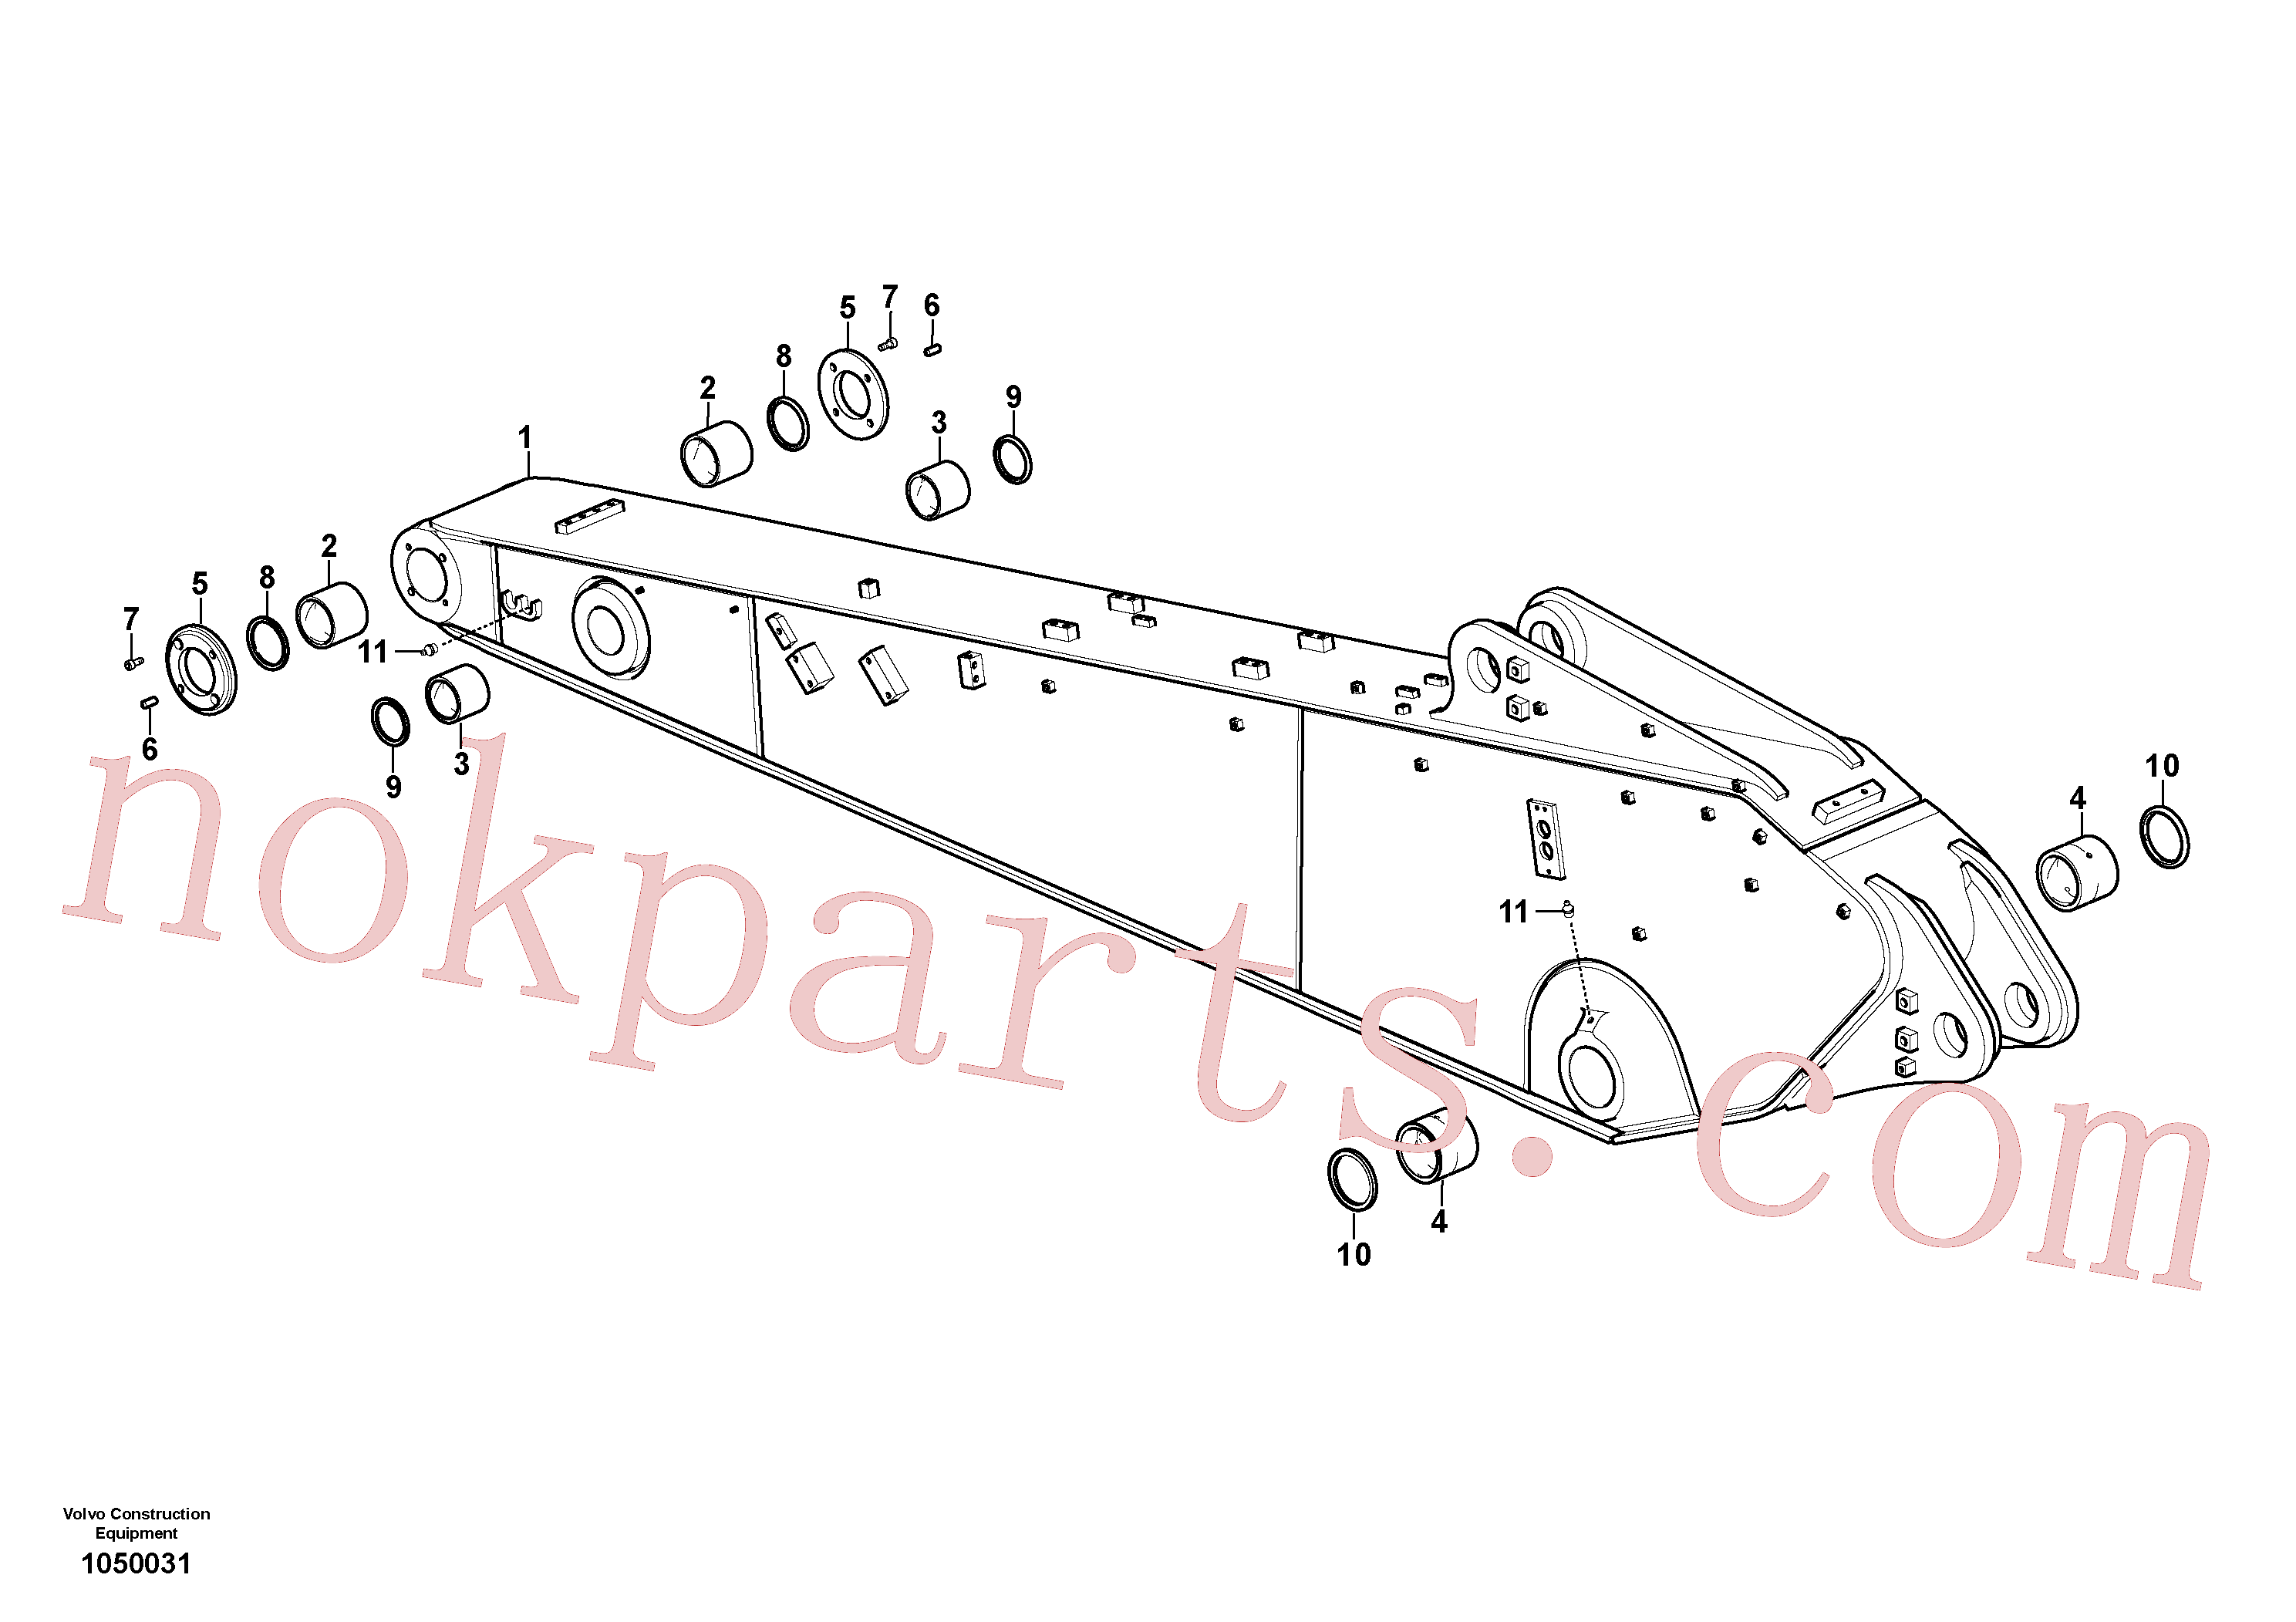 VOE14544974 for Volvo Dipper arm and grease piping with piping seat(1050031 assembly)